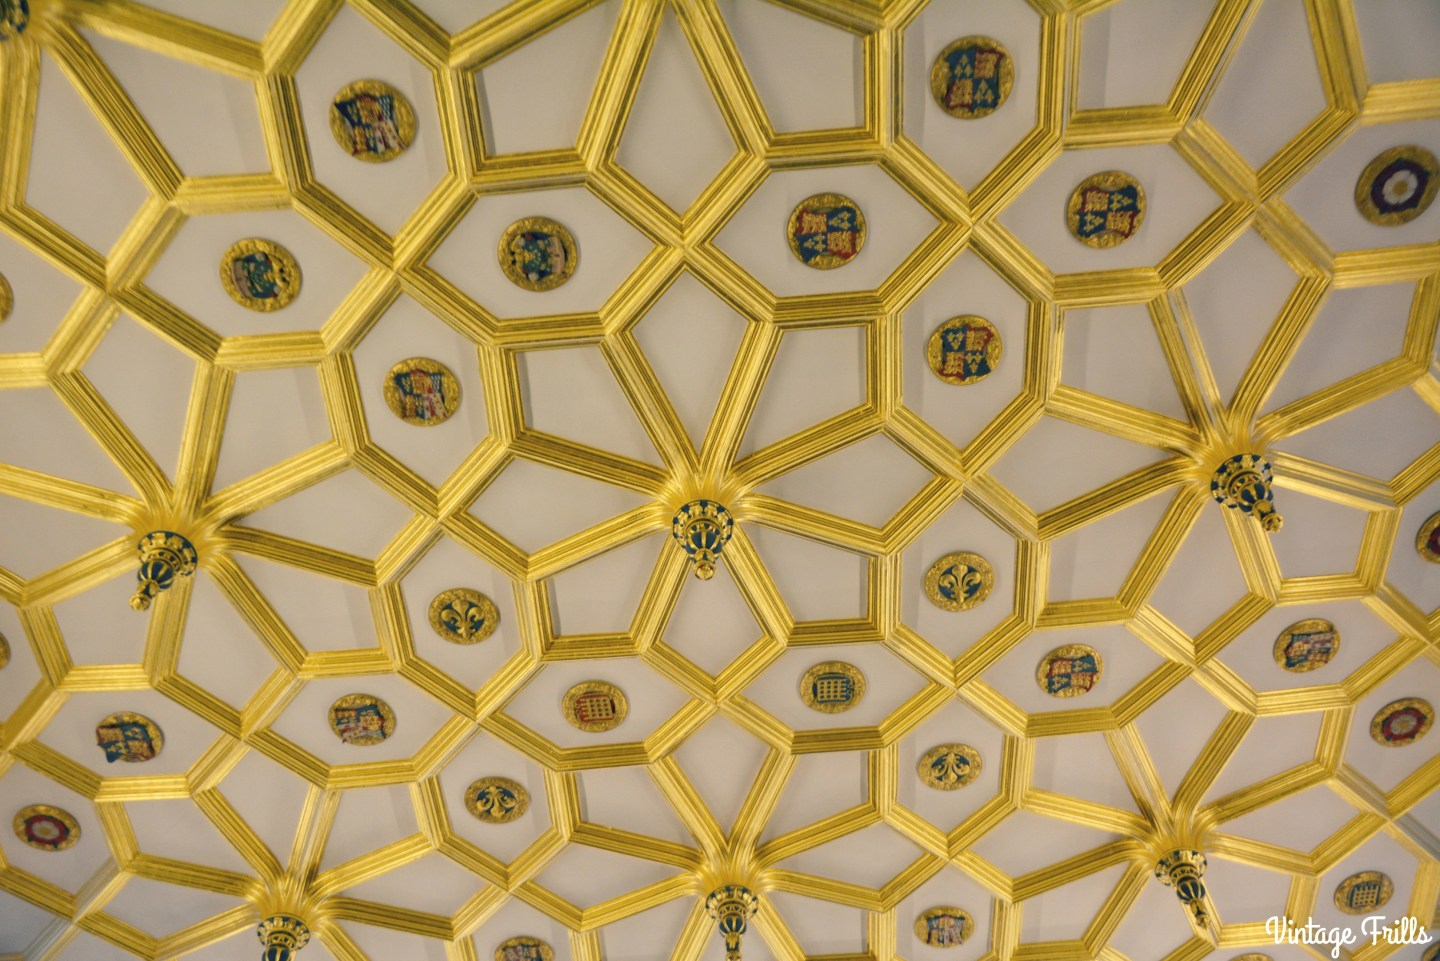 gold-tudor-ceiling-hampton-court